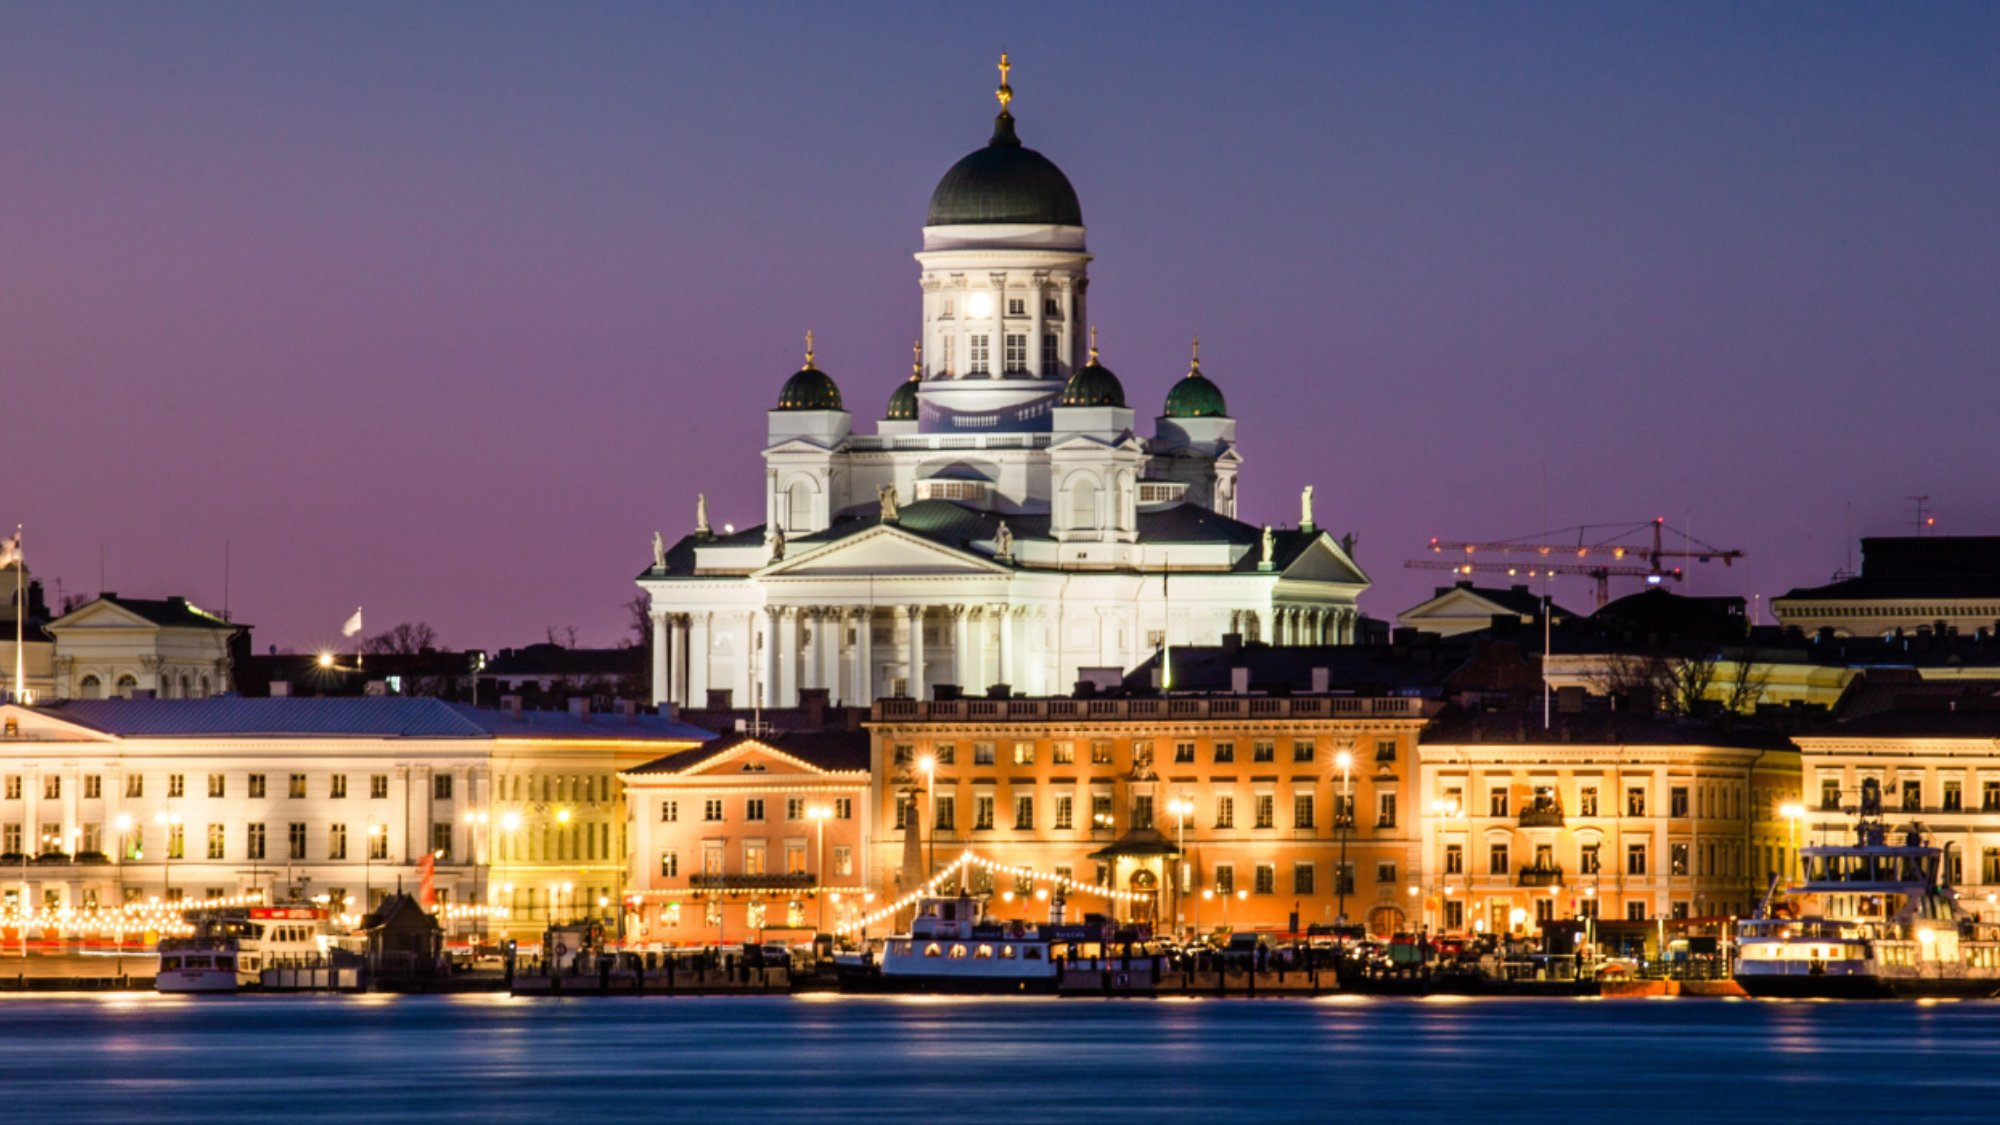 Helsinki cityscape at night